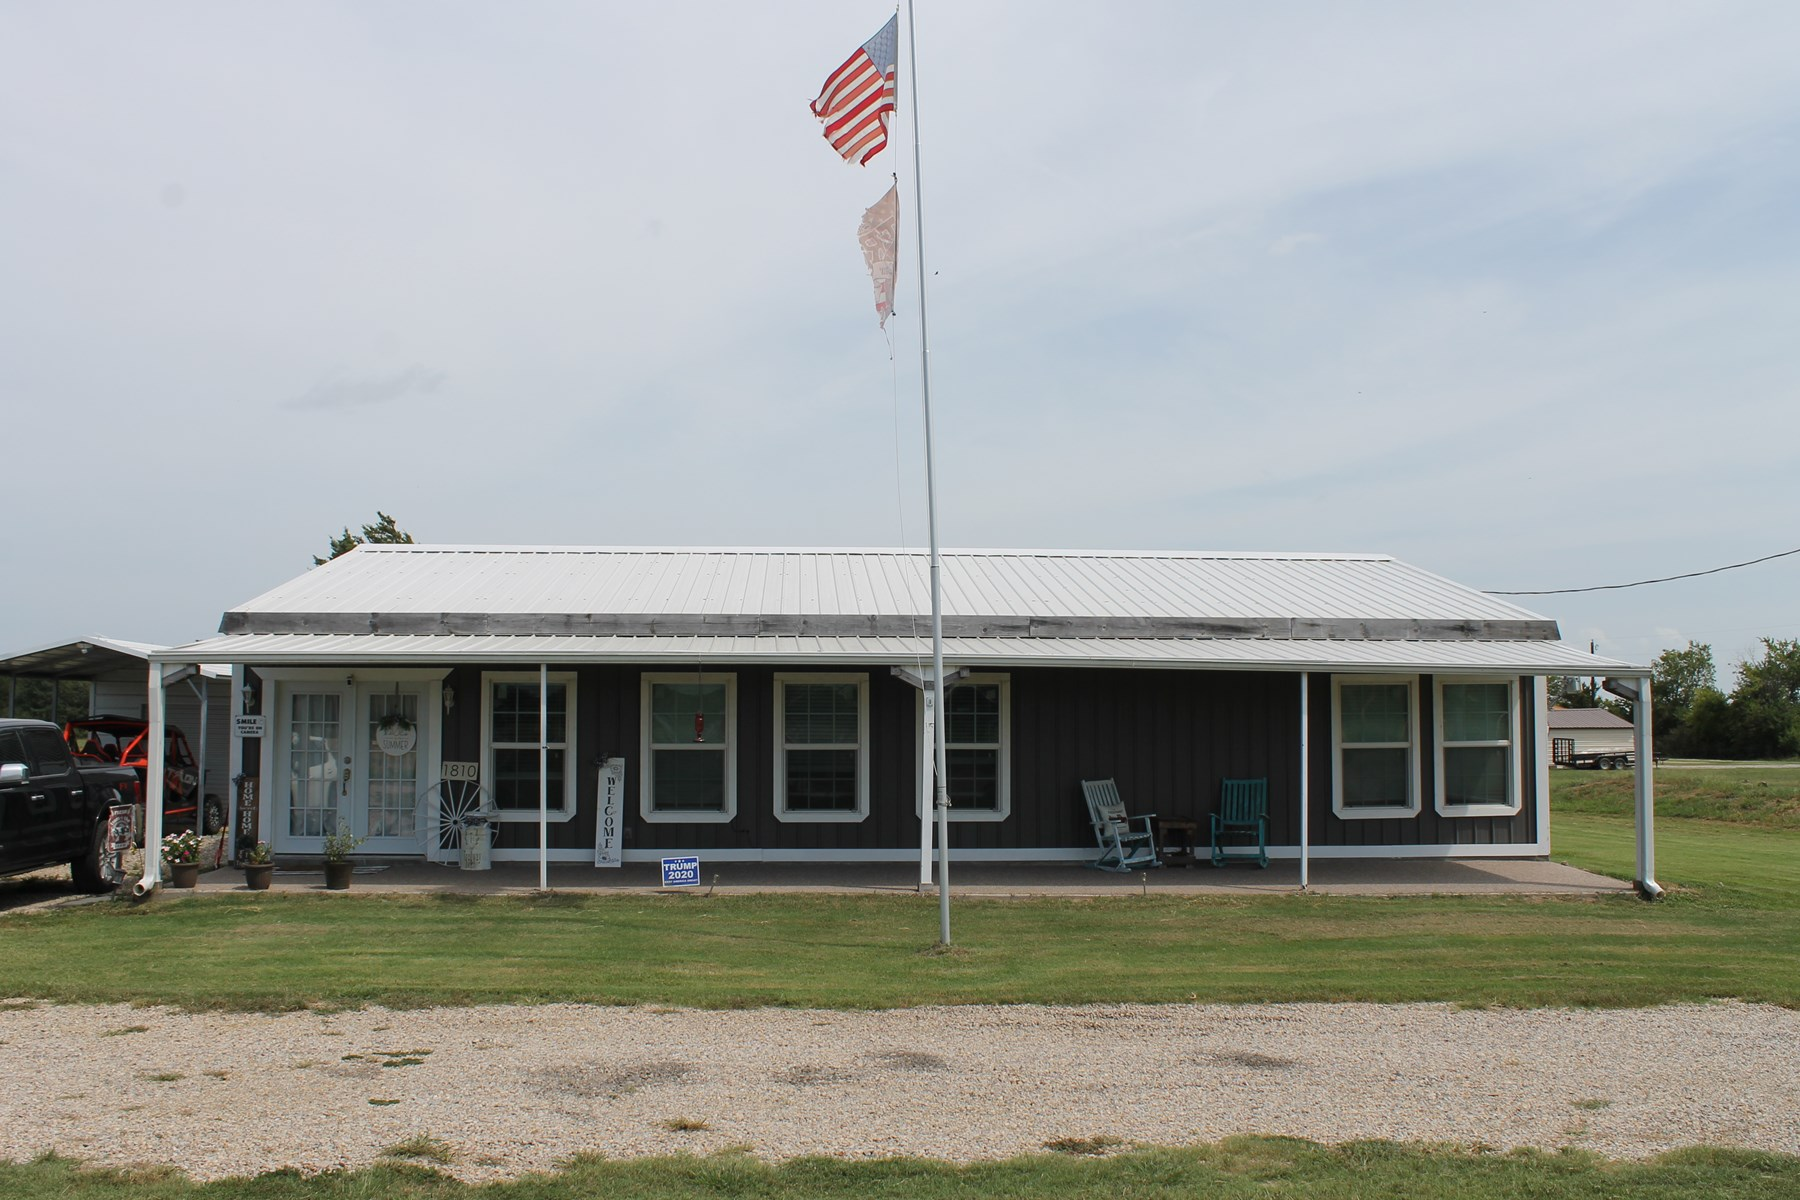 Country Home Close to Town For Sale in Sumner, Texas!